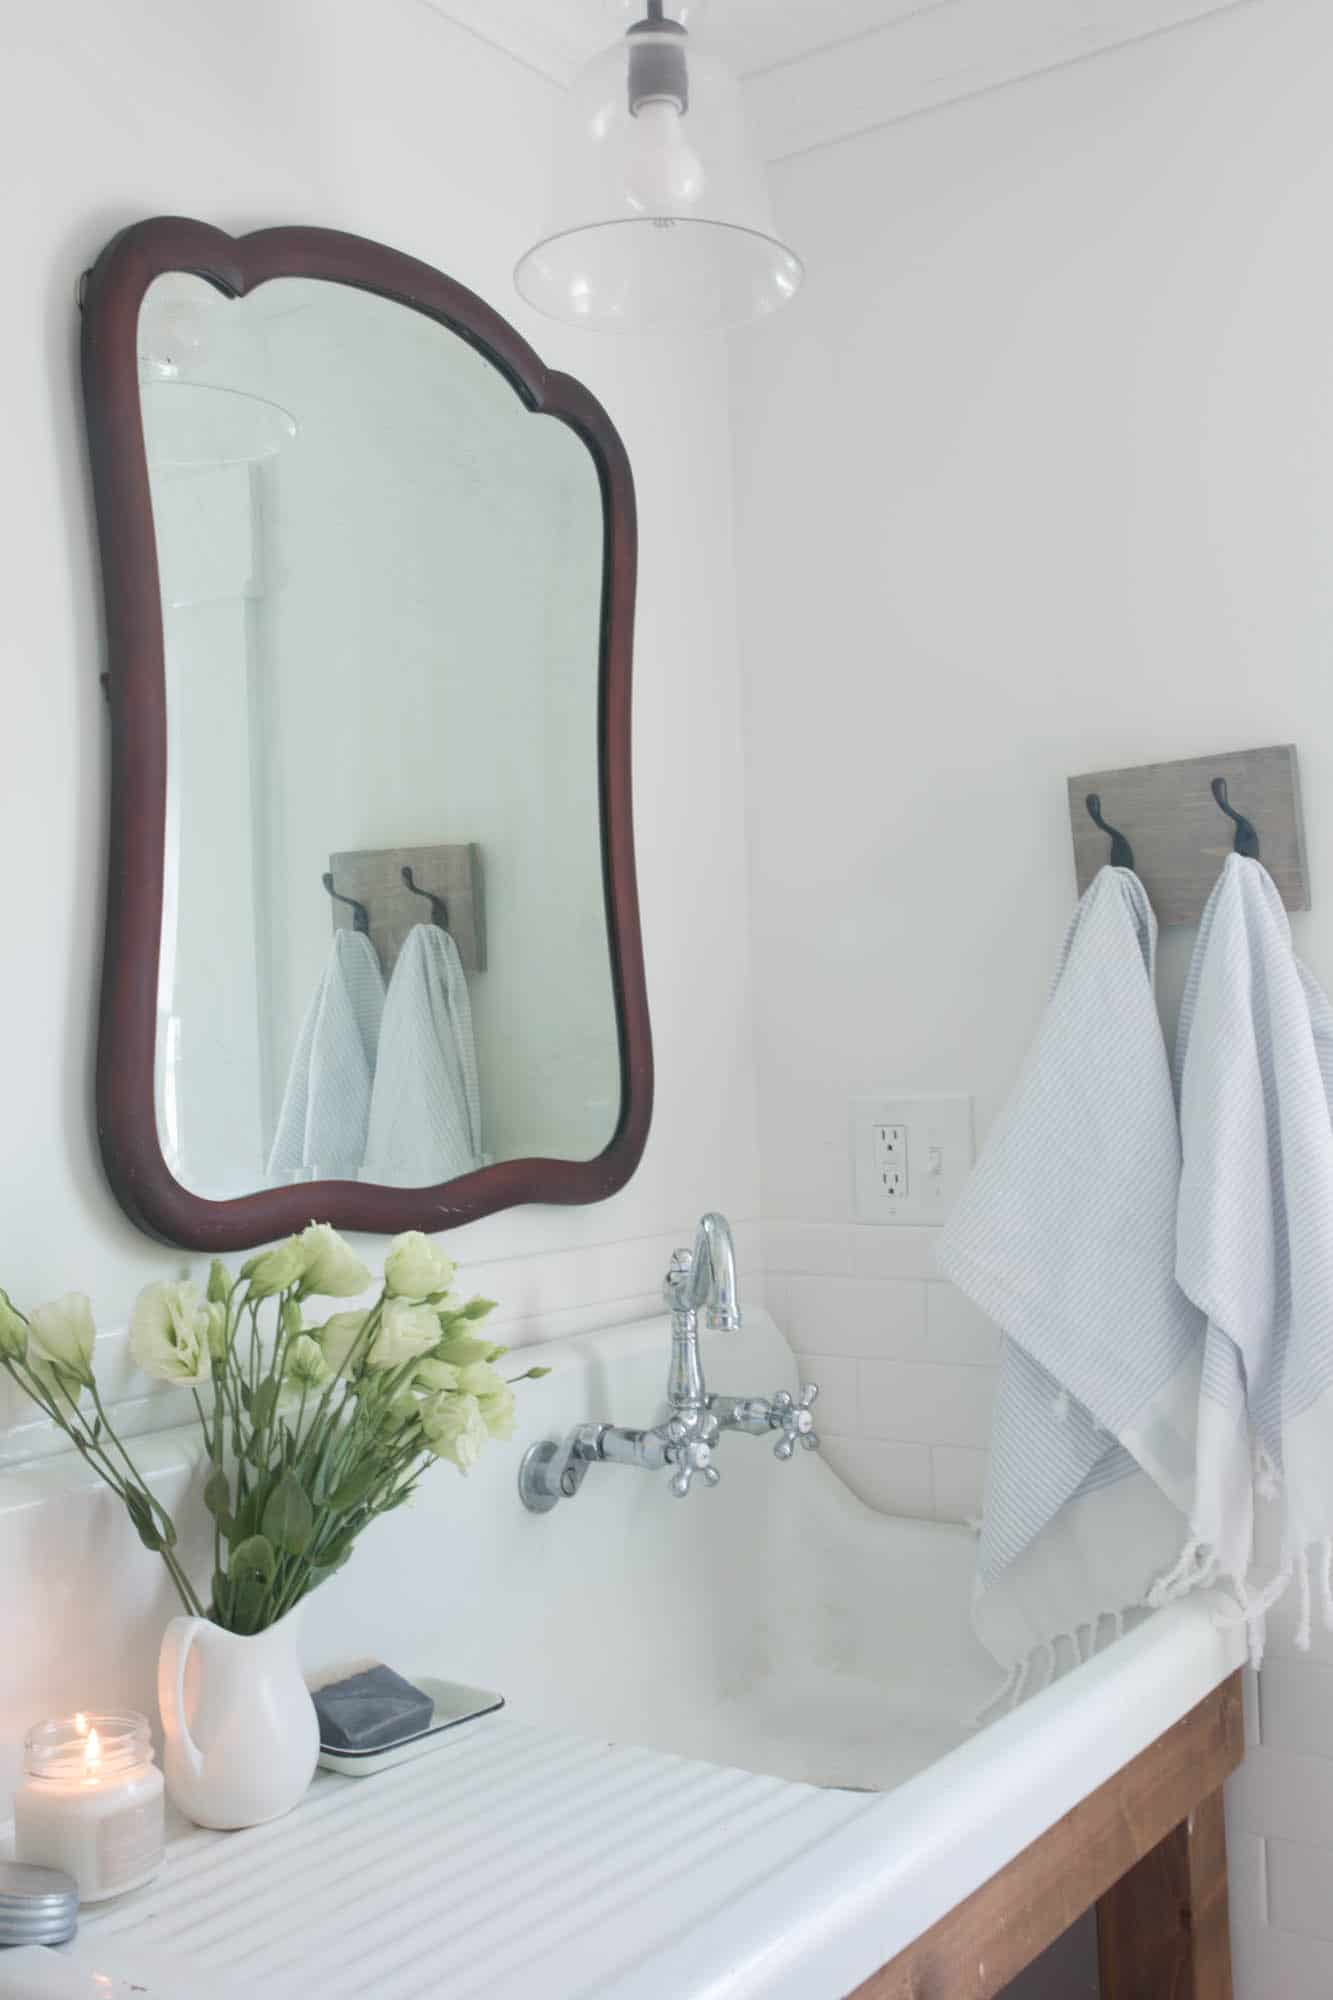 Farmhouse Bathroom Refresh- Vintage Mirror and Turkish Towels